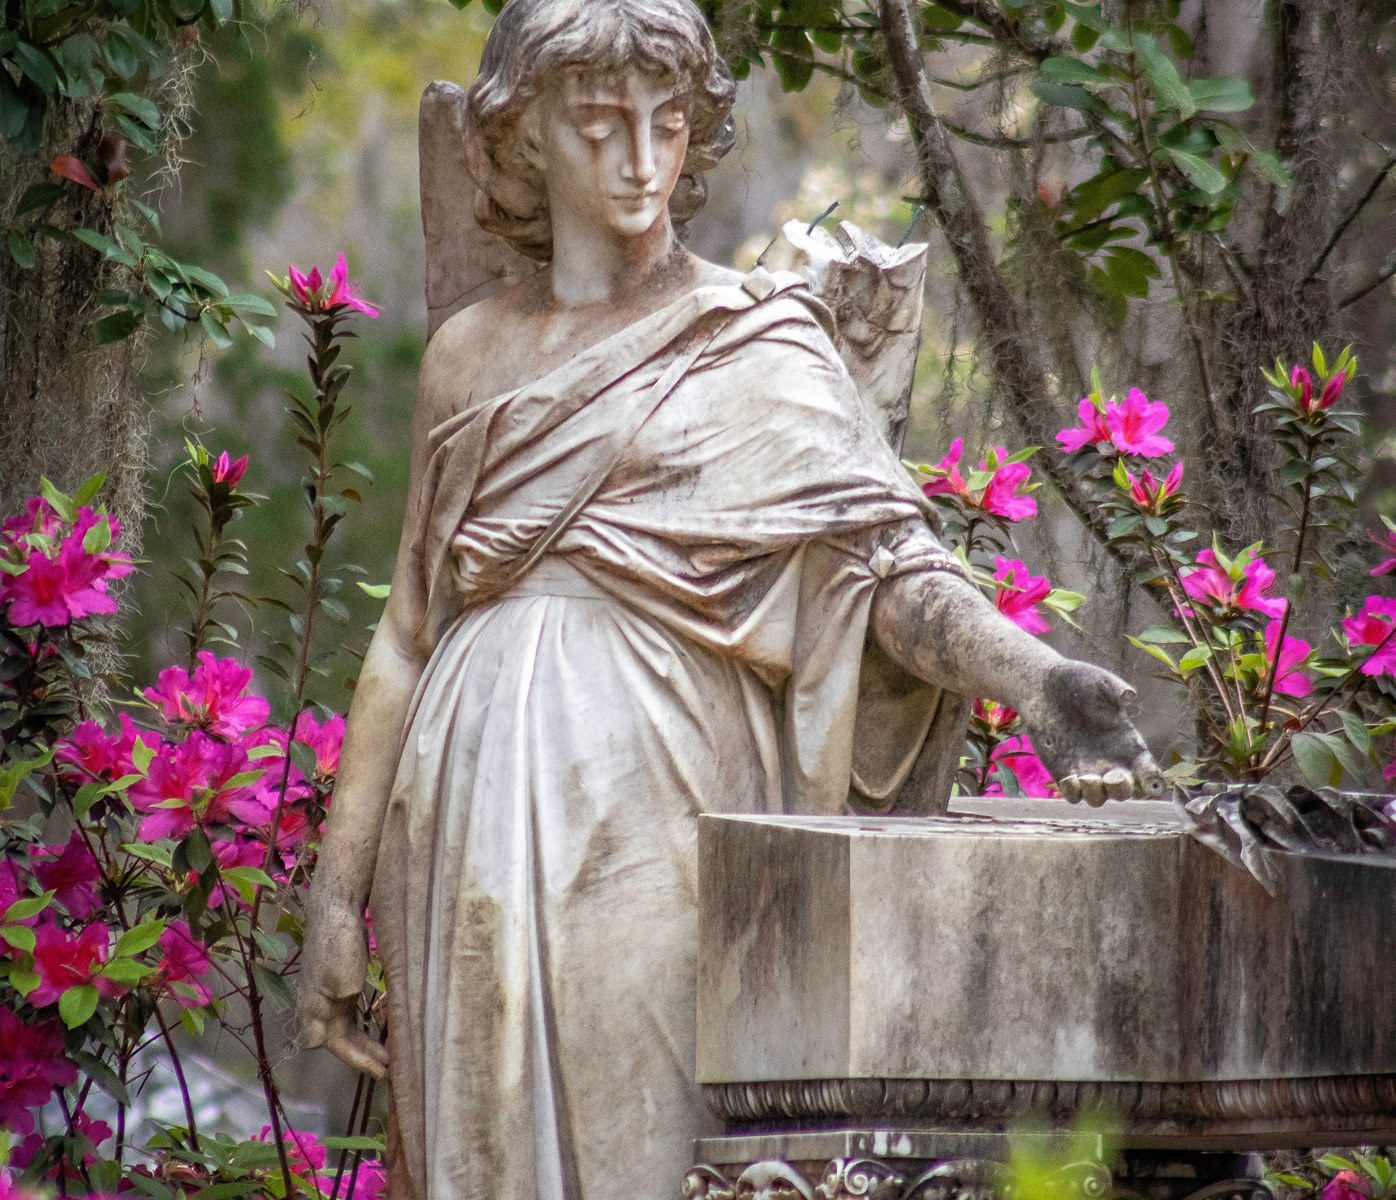 A statue surrounded by blooming pink azaleas in Bonaventure Cemetery